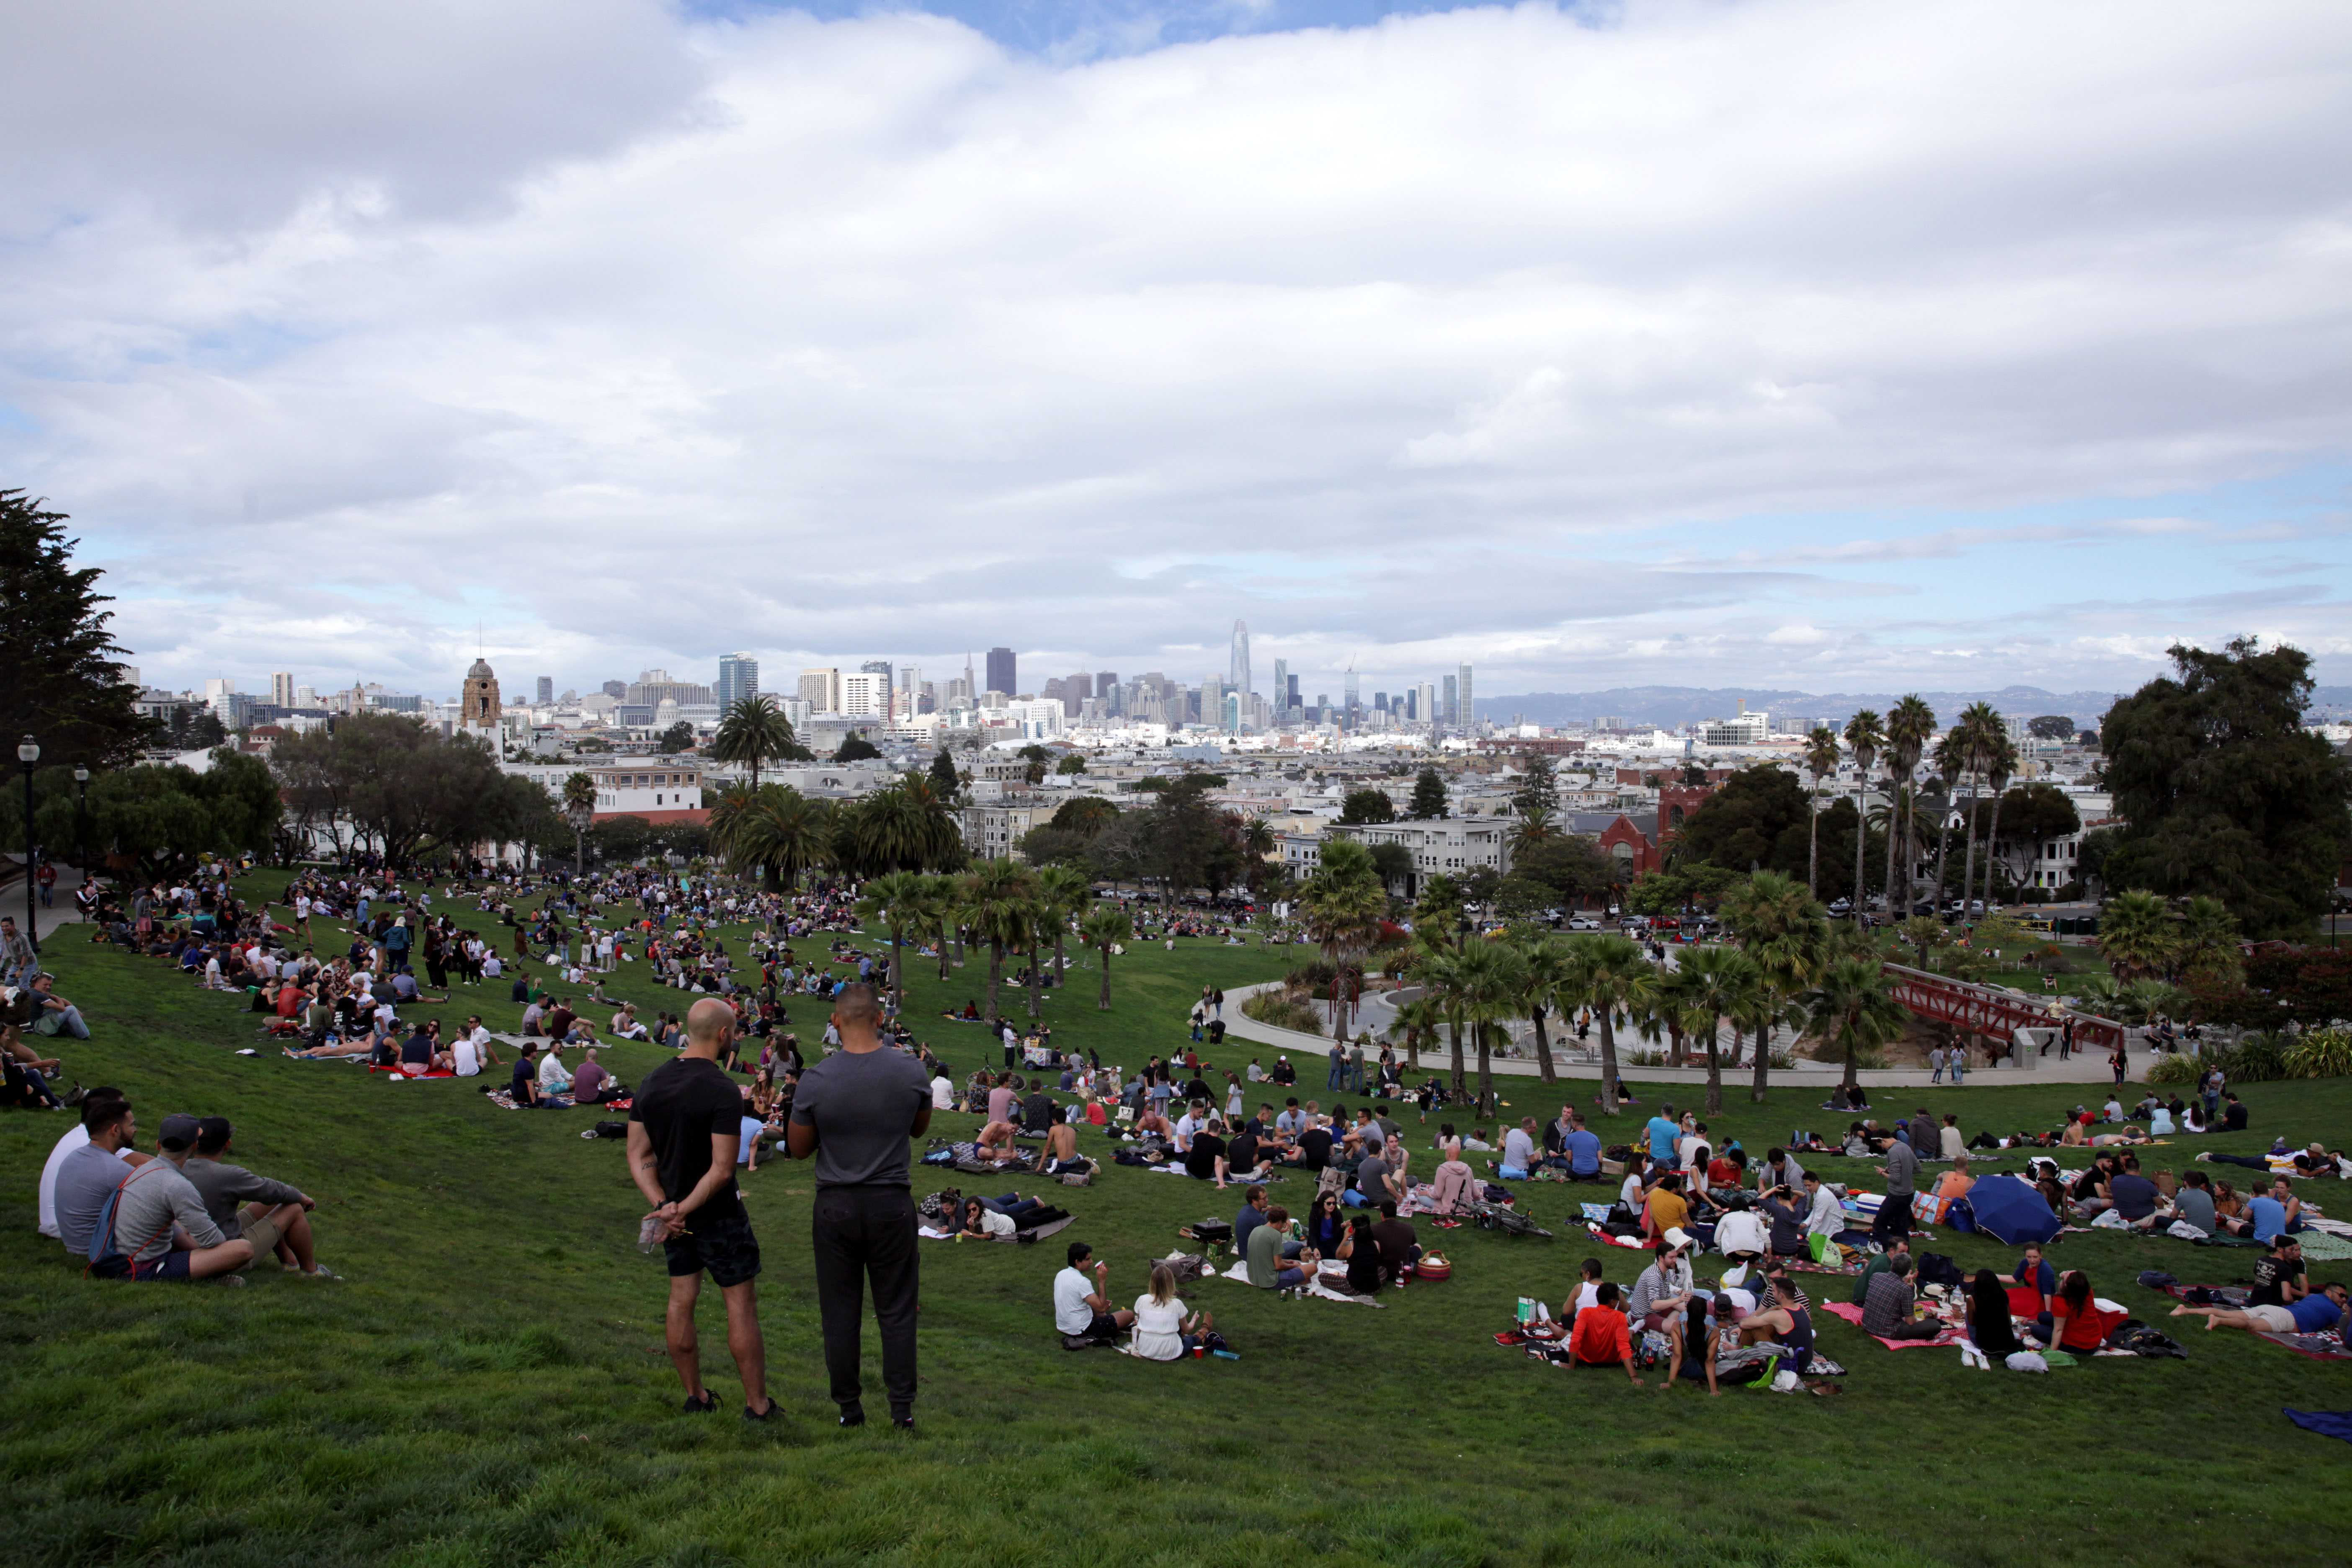 The top of Mission Dolores Park, in San Francisco, Calif. on September 29, 2018. (Janett Perez/Xpress)